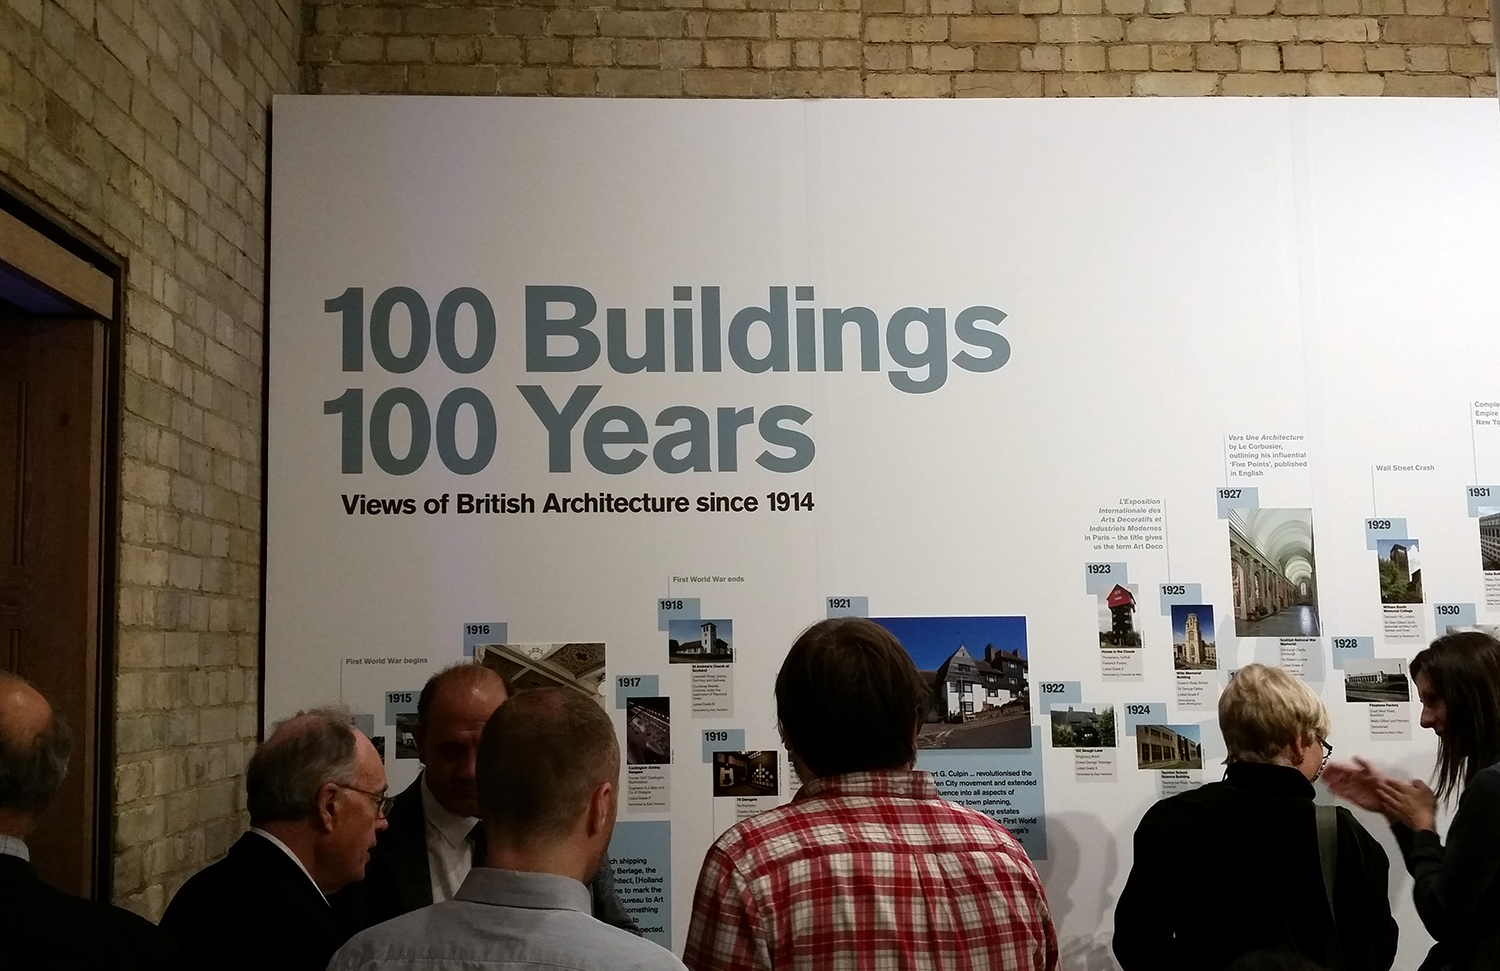 100 Years 100 Buildings exhibition at the Royal Academy of Arts to celebrate the centenary of The Twentieth Century Society.